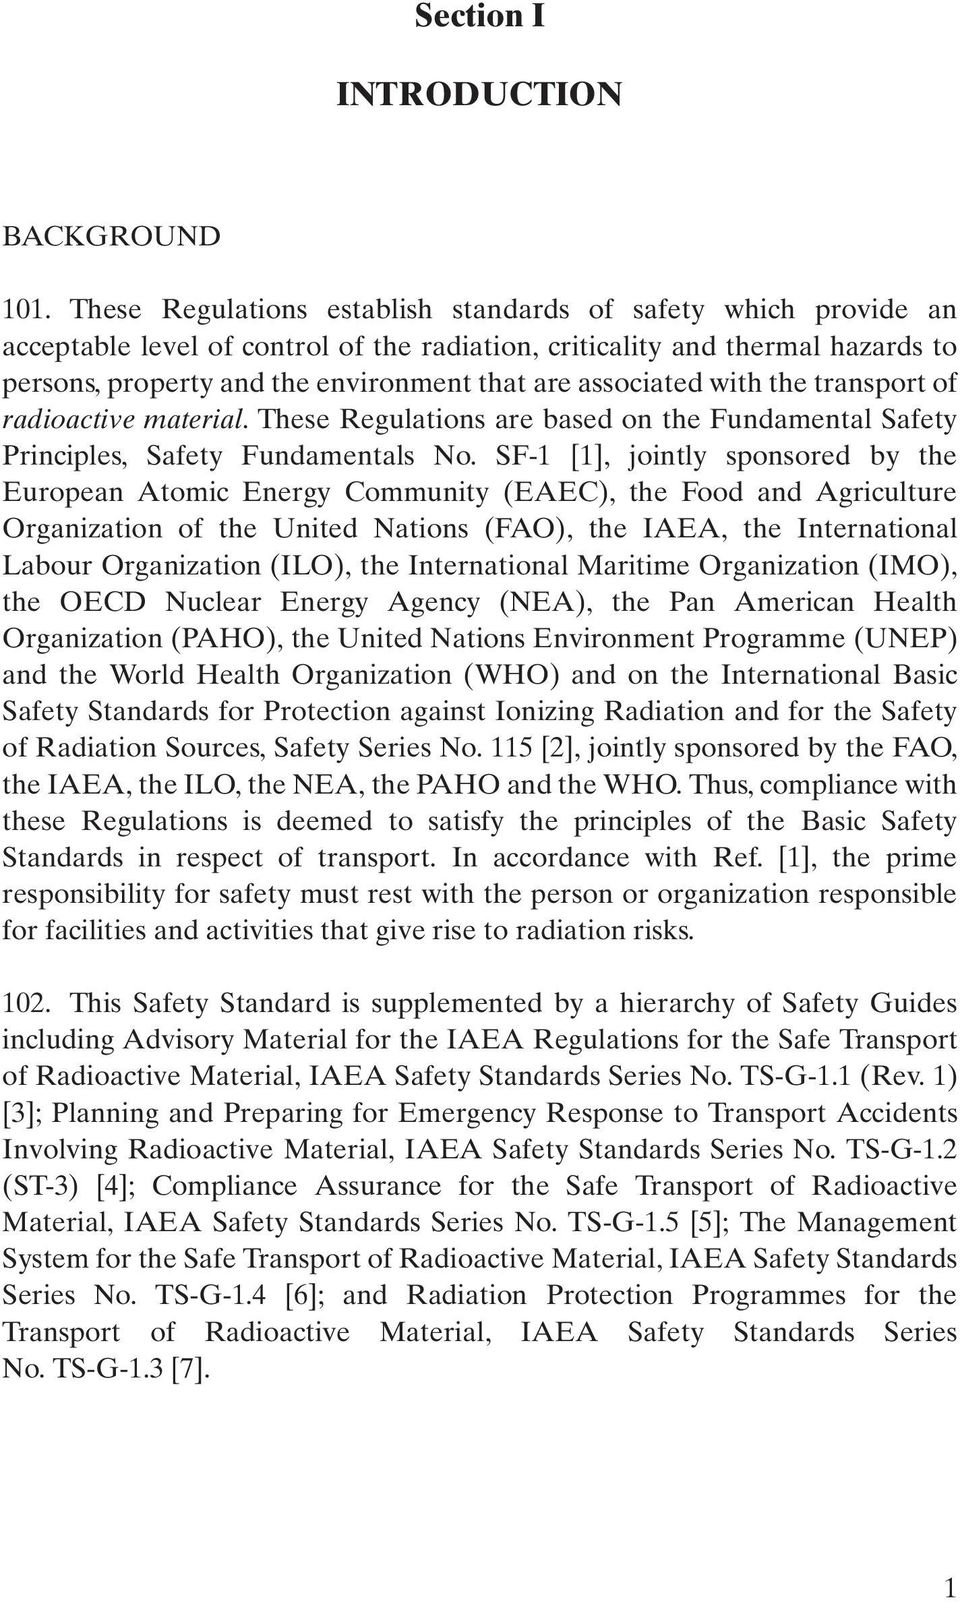 associated with the transport of radioactive material. These Regulations are based on the Fundamental Safety Principles, Safety Fundamentals No.